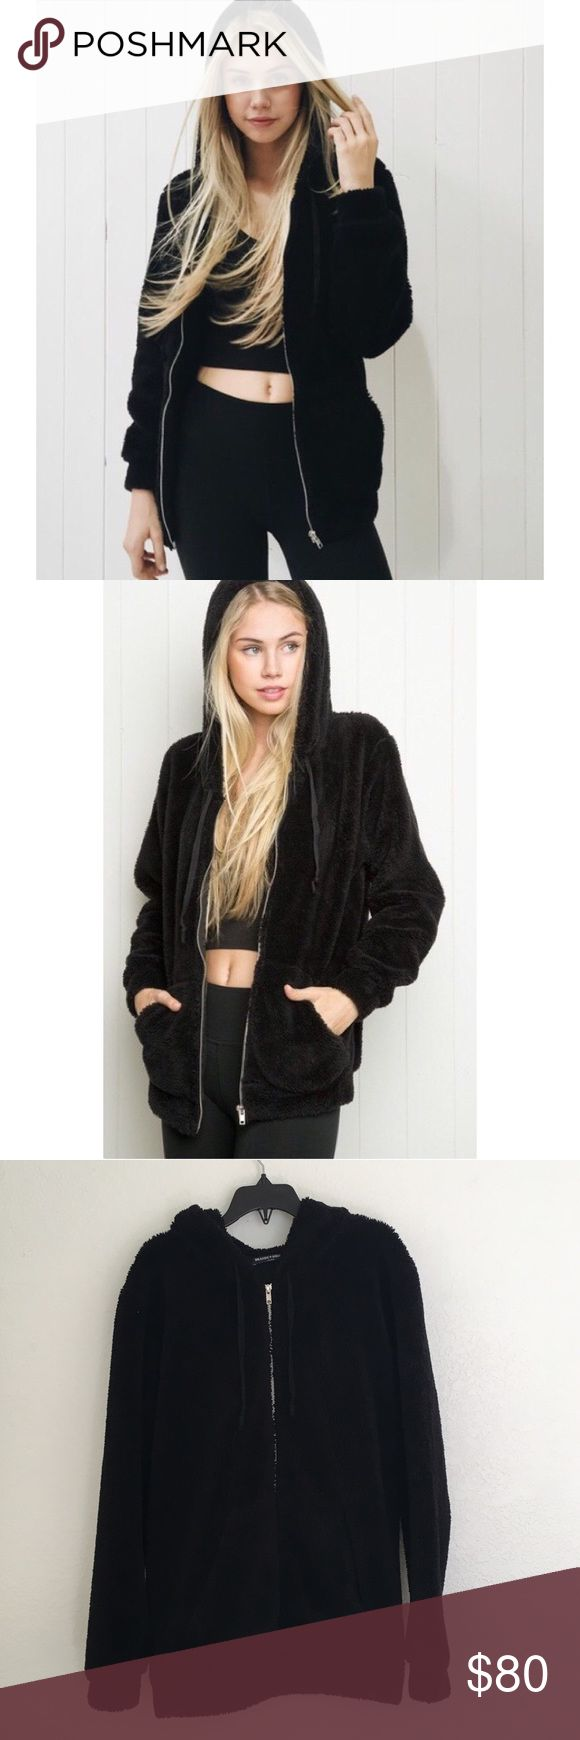 """• BM Plush Jacket • Brandy Melville • Black • Fuzzy + Soft Zip Up Jacket + Hood + """"Christina"""" • One Size  • 10/10 Condition  ❌No Trades ☀️ All Prices Are Starting Points 💕 Submit An Offer  Tags: John Galt, BM, American Eagle Outfitters, AEO, Urban Outfitters, UO, Forever 21, F21, Plush, Soft Brandy Melville Jackets & Coats"""